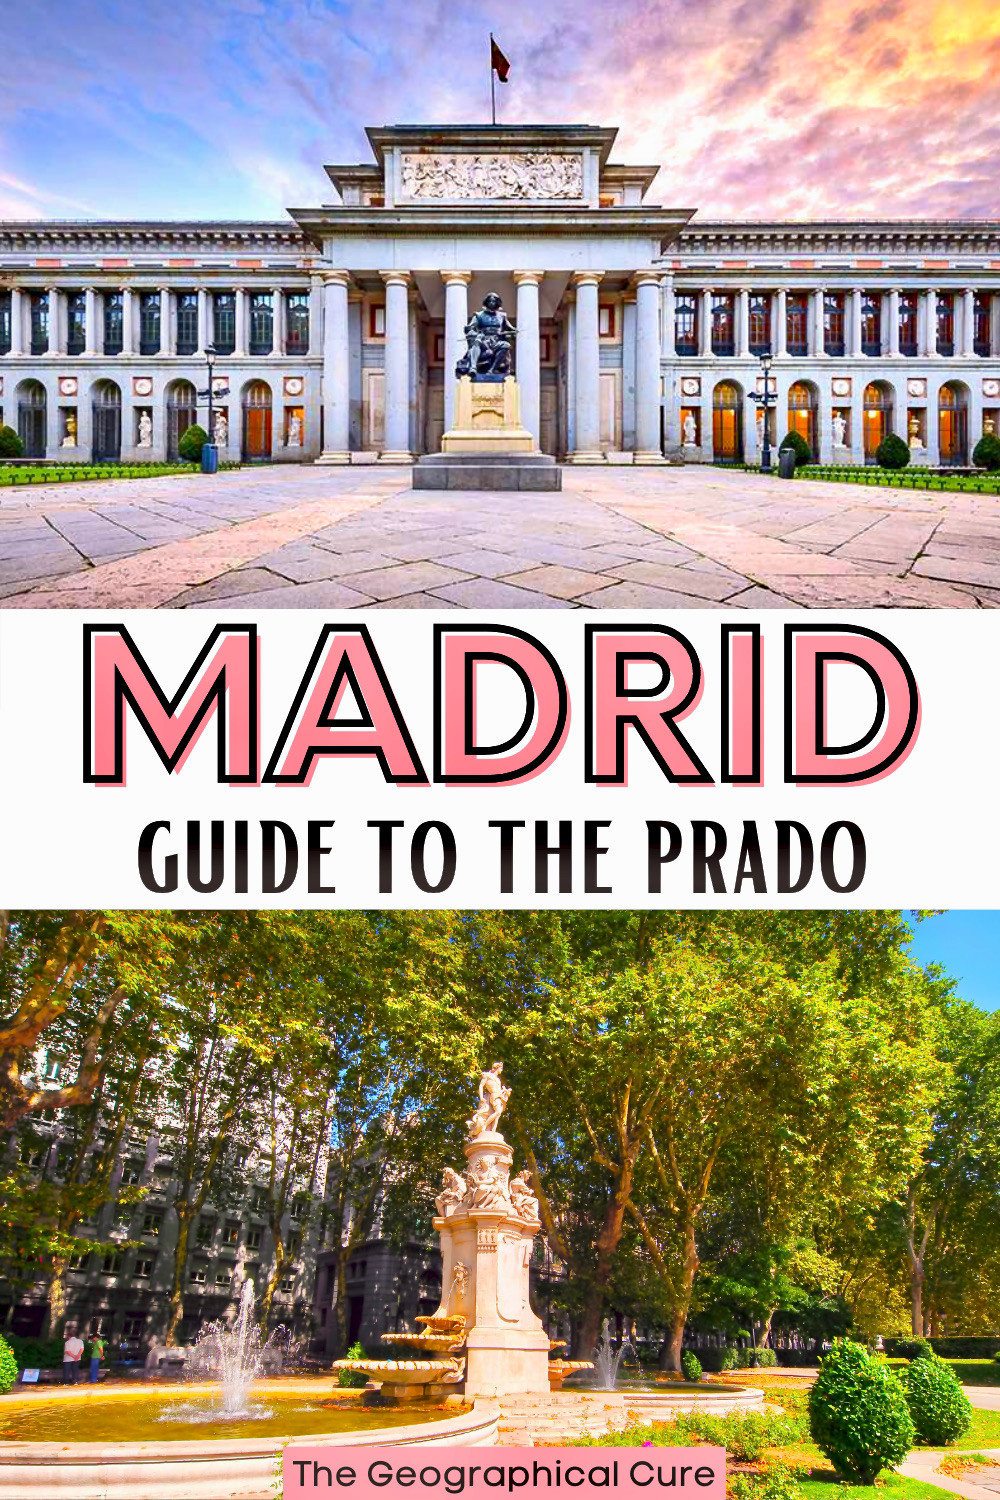 ultimate guide to the masterpieces of the Prado Museum in Madrid, with tips for visiting